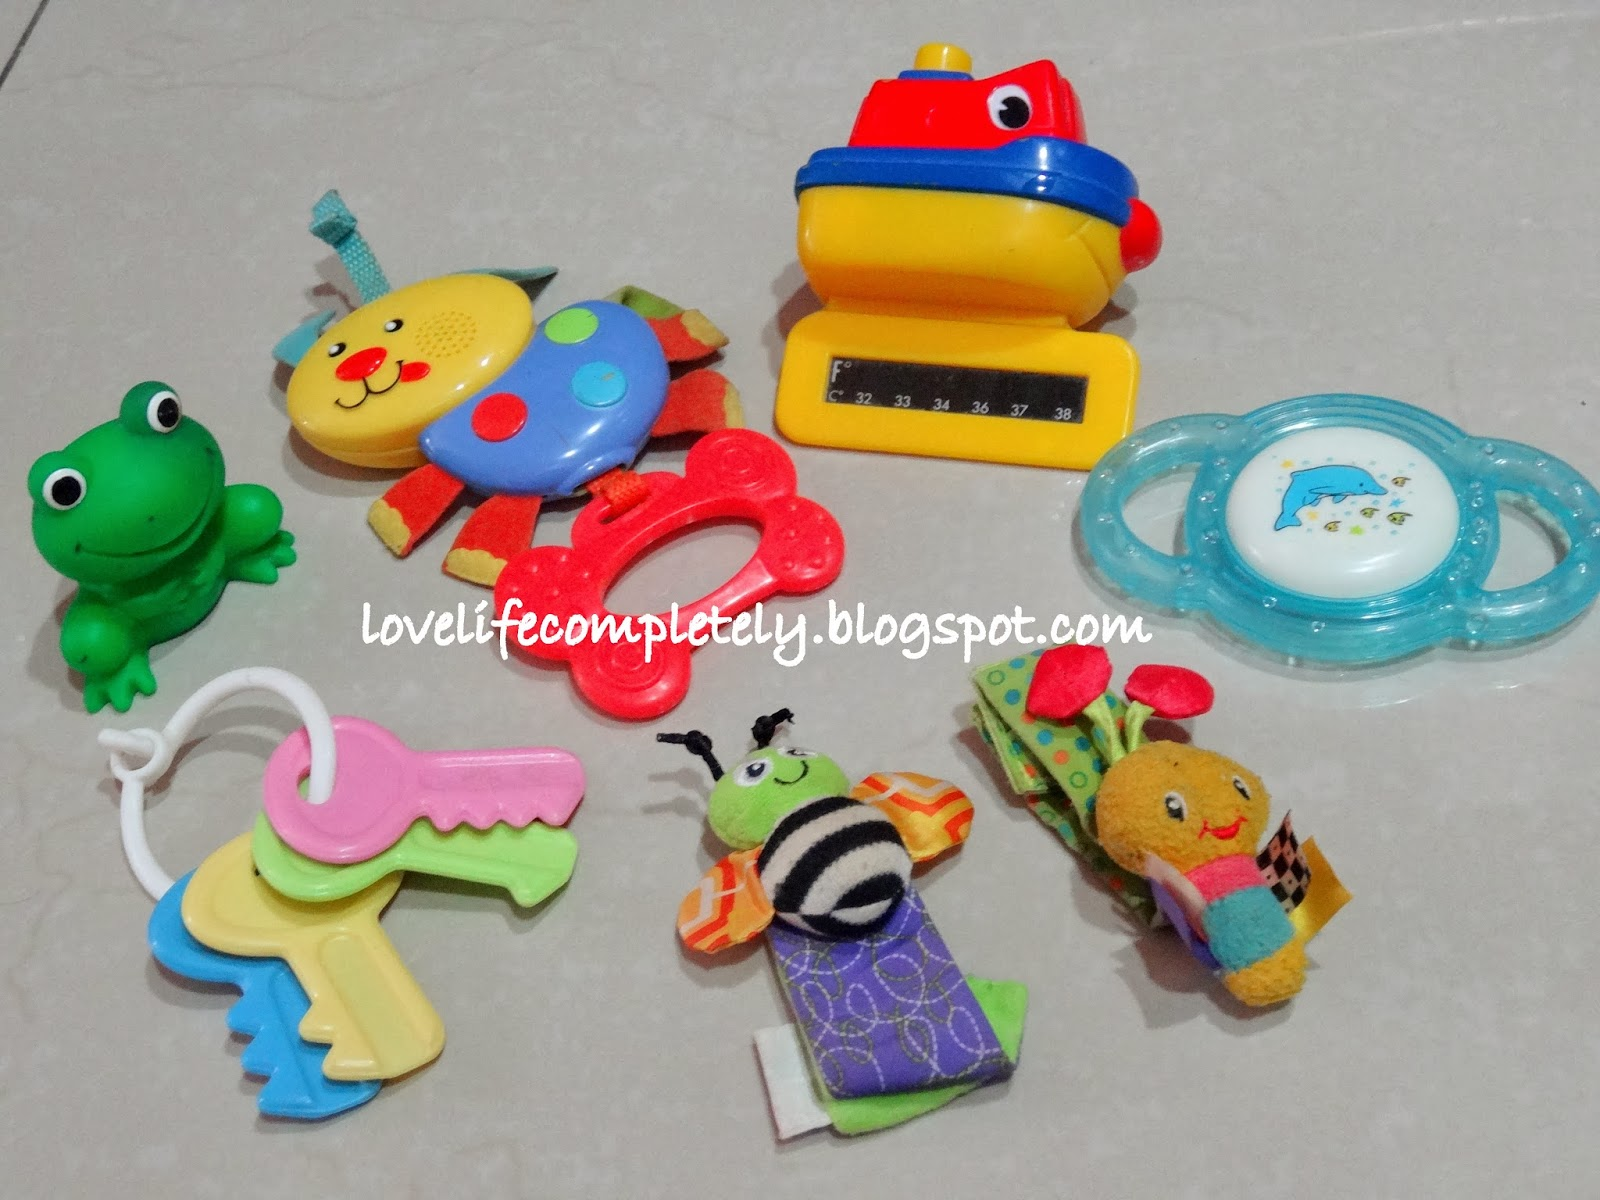 Baby Toys Sale Lovelifecompletely Pre Loved Baby Toys For Sale